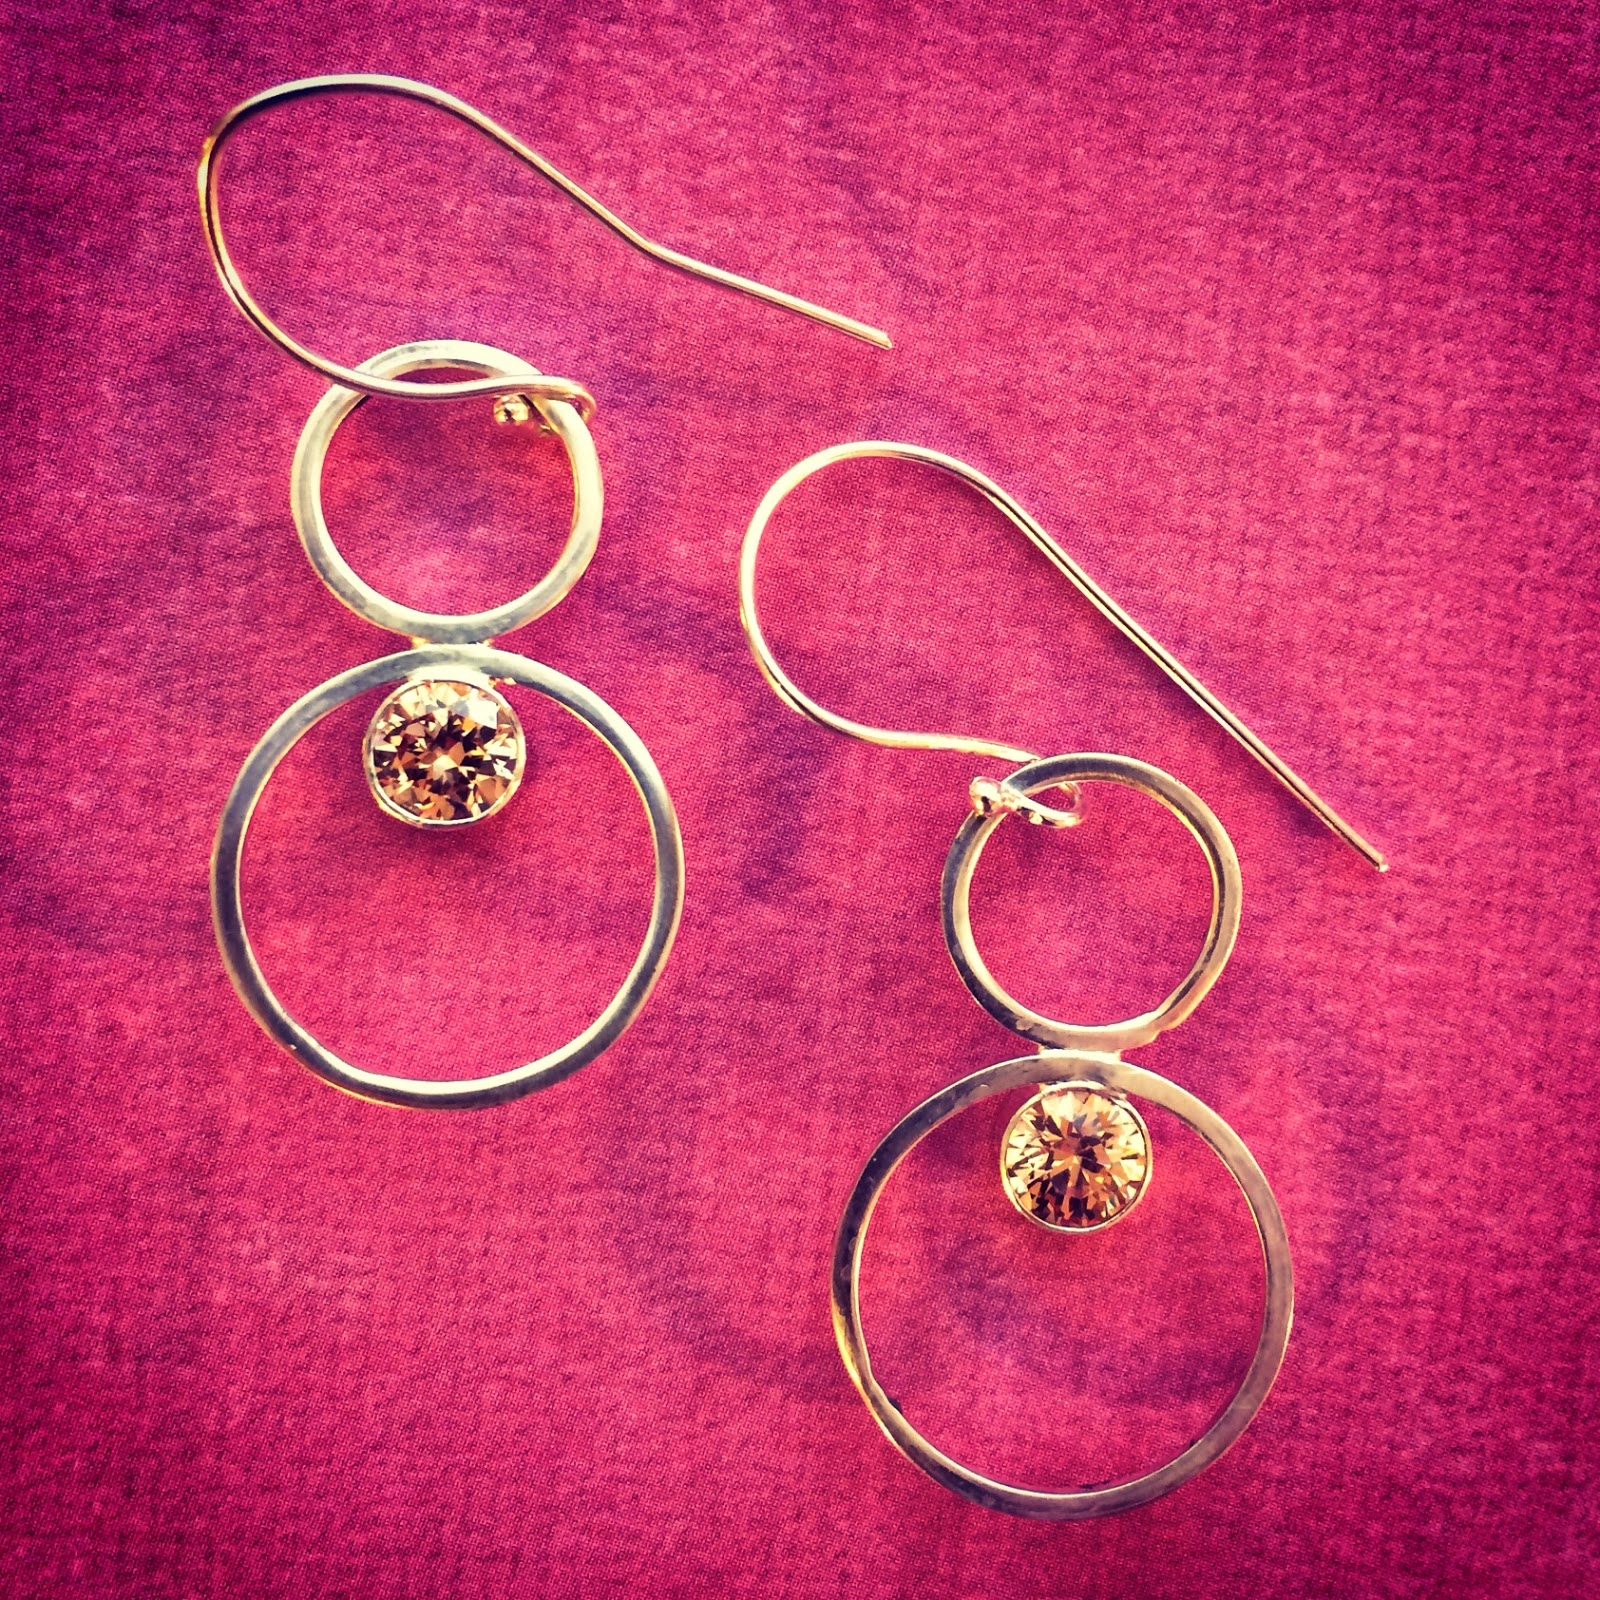 Tube set silver circle earrings with champaign czs set in them